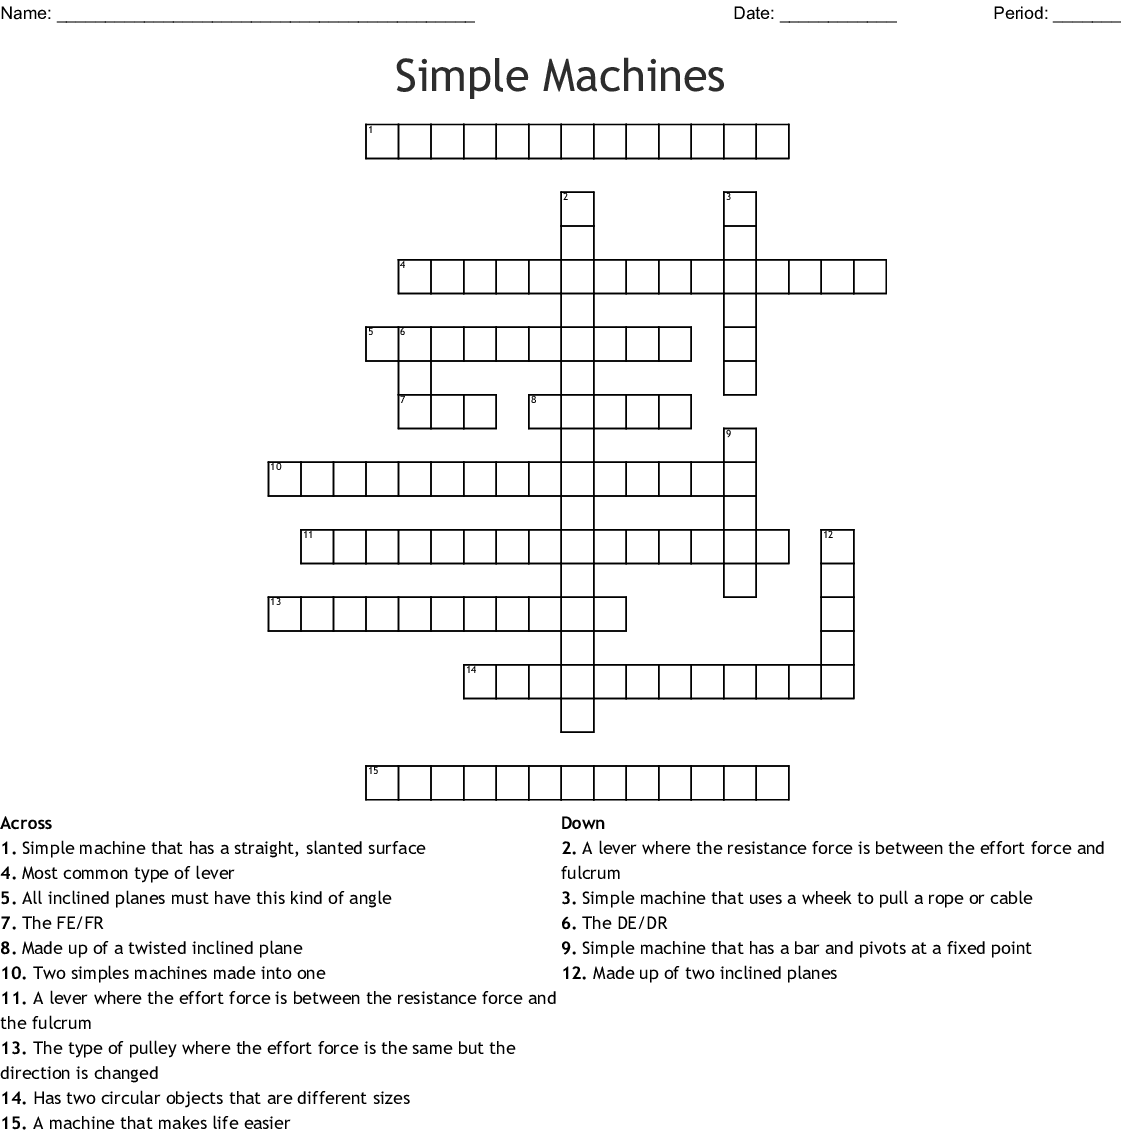 Simple Machines Crossword Puzzle Worksheet Answers